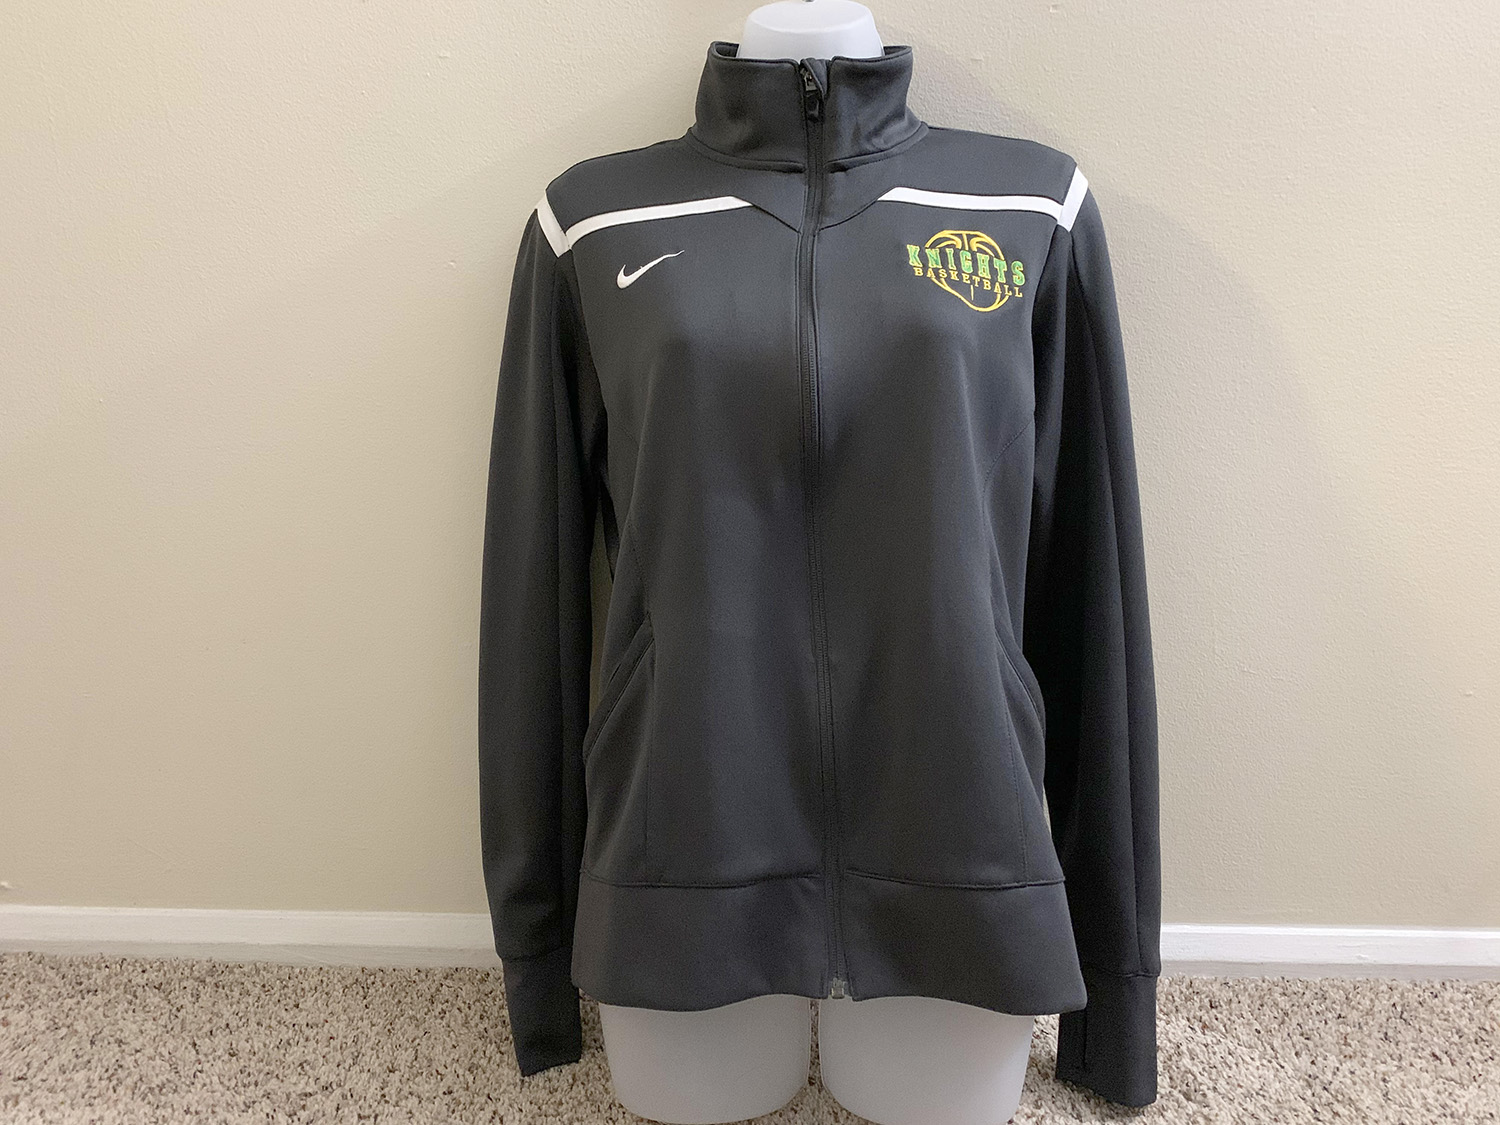 Nike Womens Team Avenger Warm Up Jacket Anthracite/White Size M